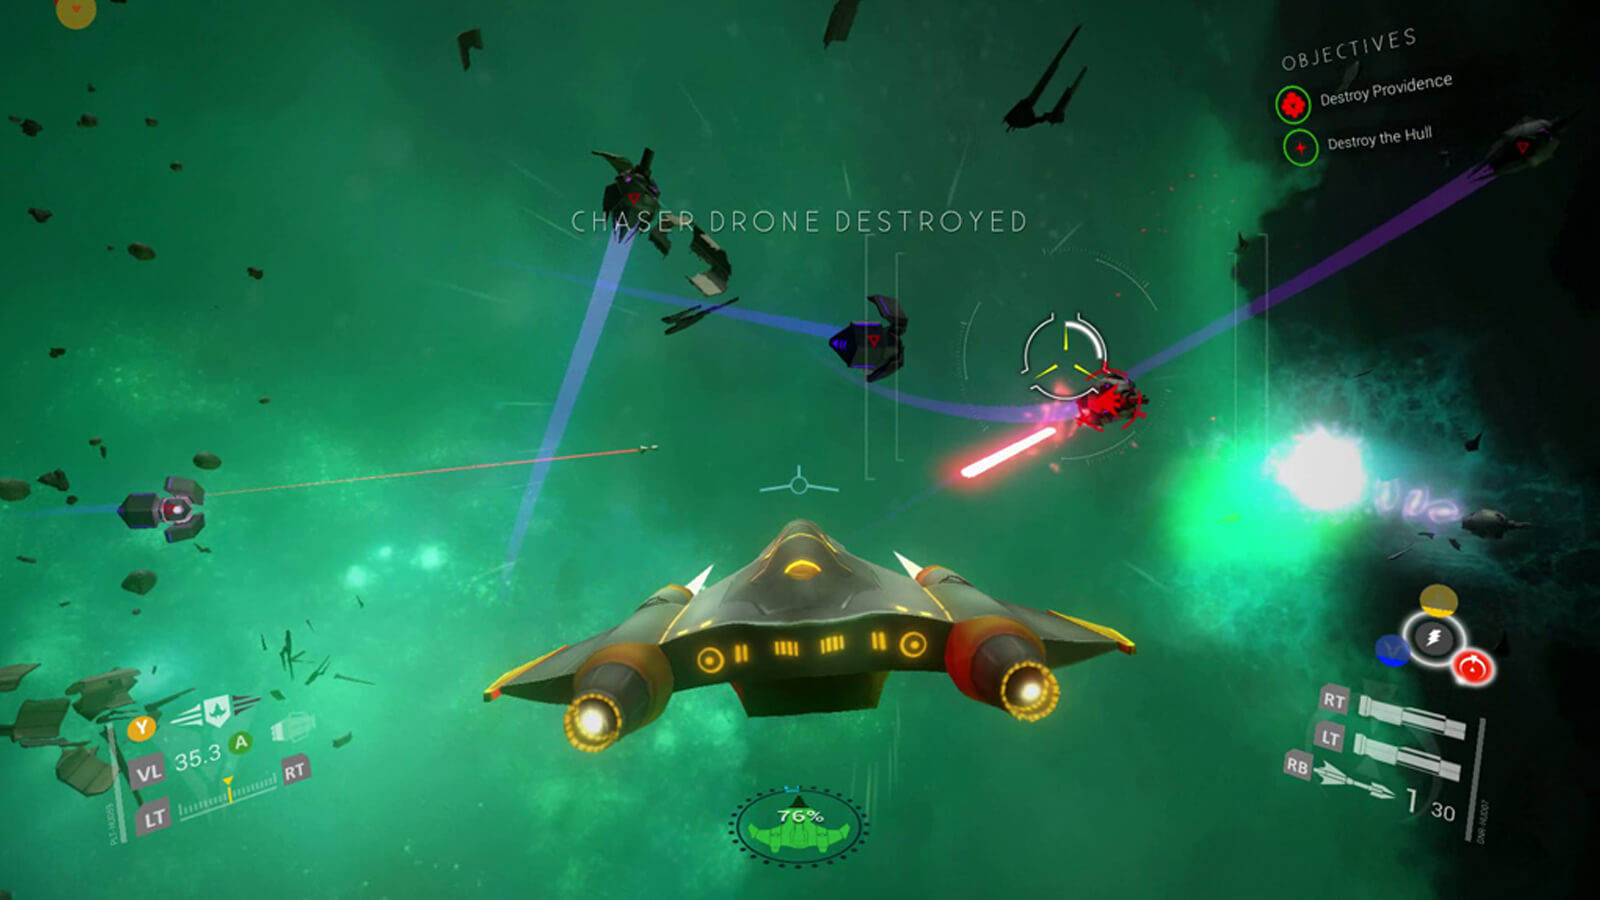 The player's spacecraft didges an enemy's red laser bolt against a green-tinged background